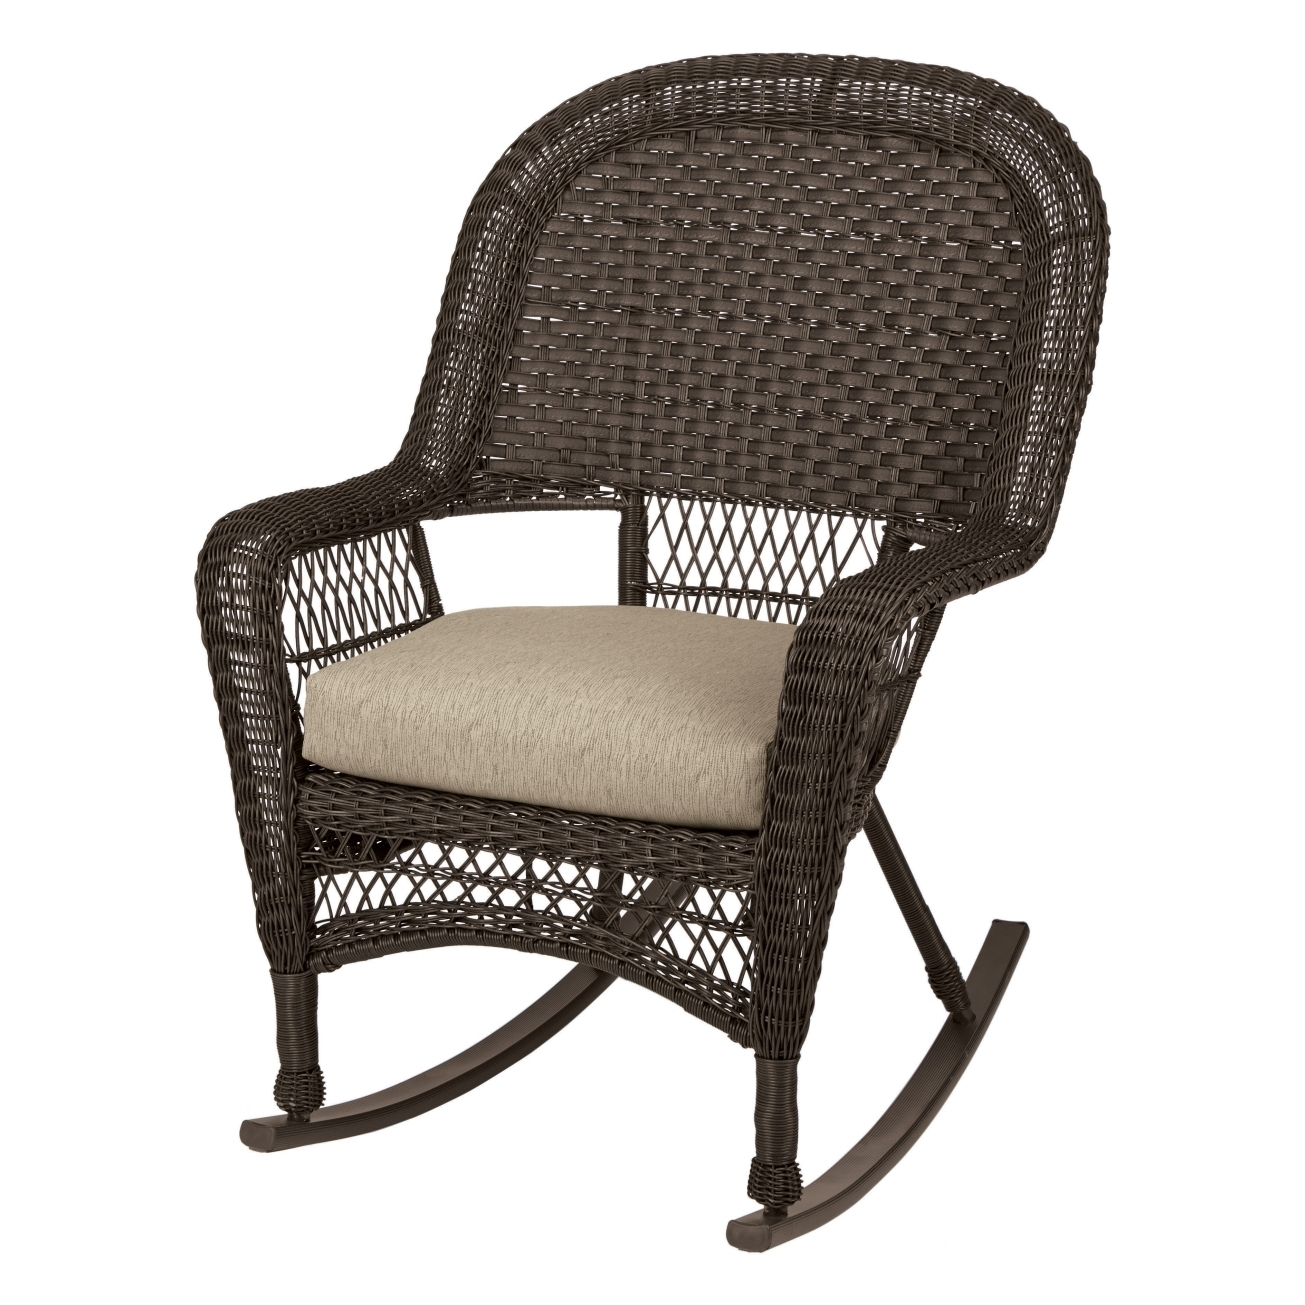 Rattan Chair Wicker Furniture Resin Wicker Rocking Chairs With Regard To Current Resin Patio Rocking Chairs (View 8 of 15)